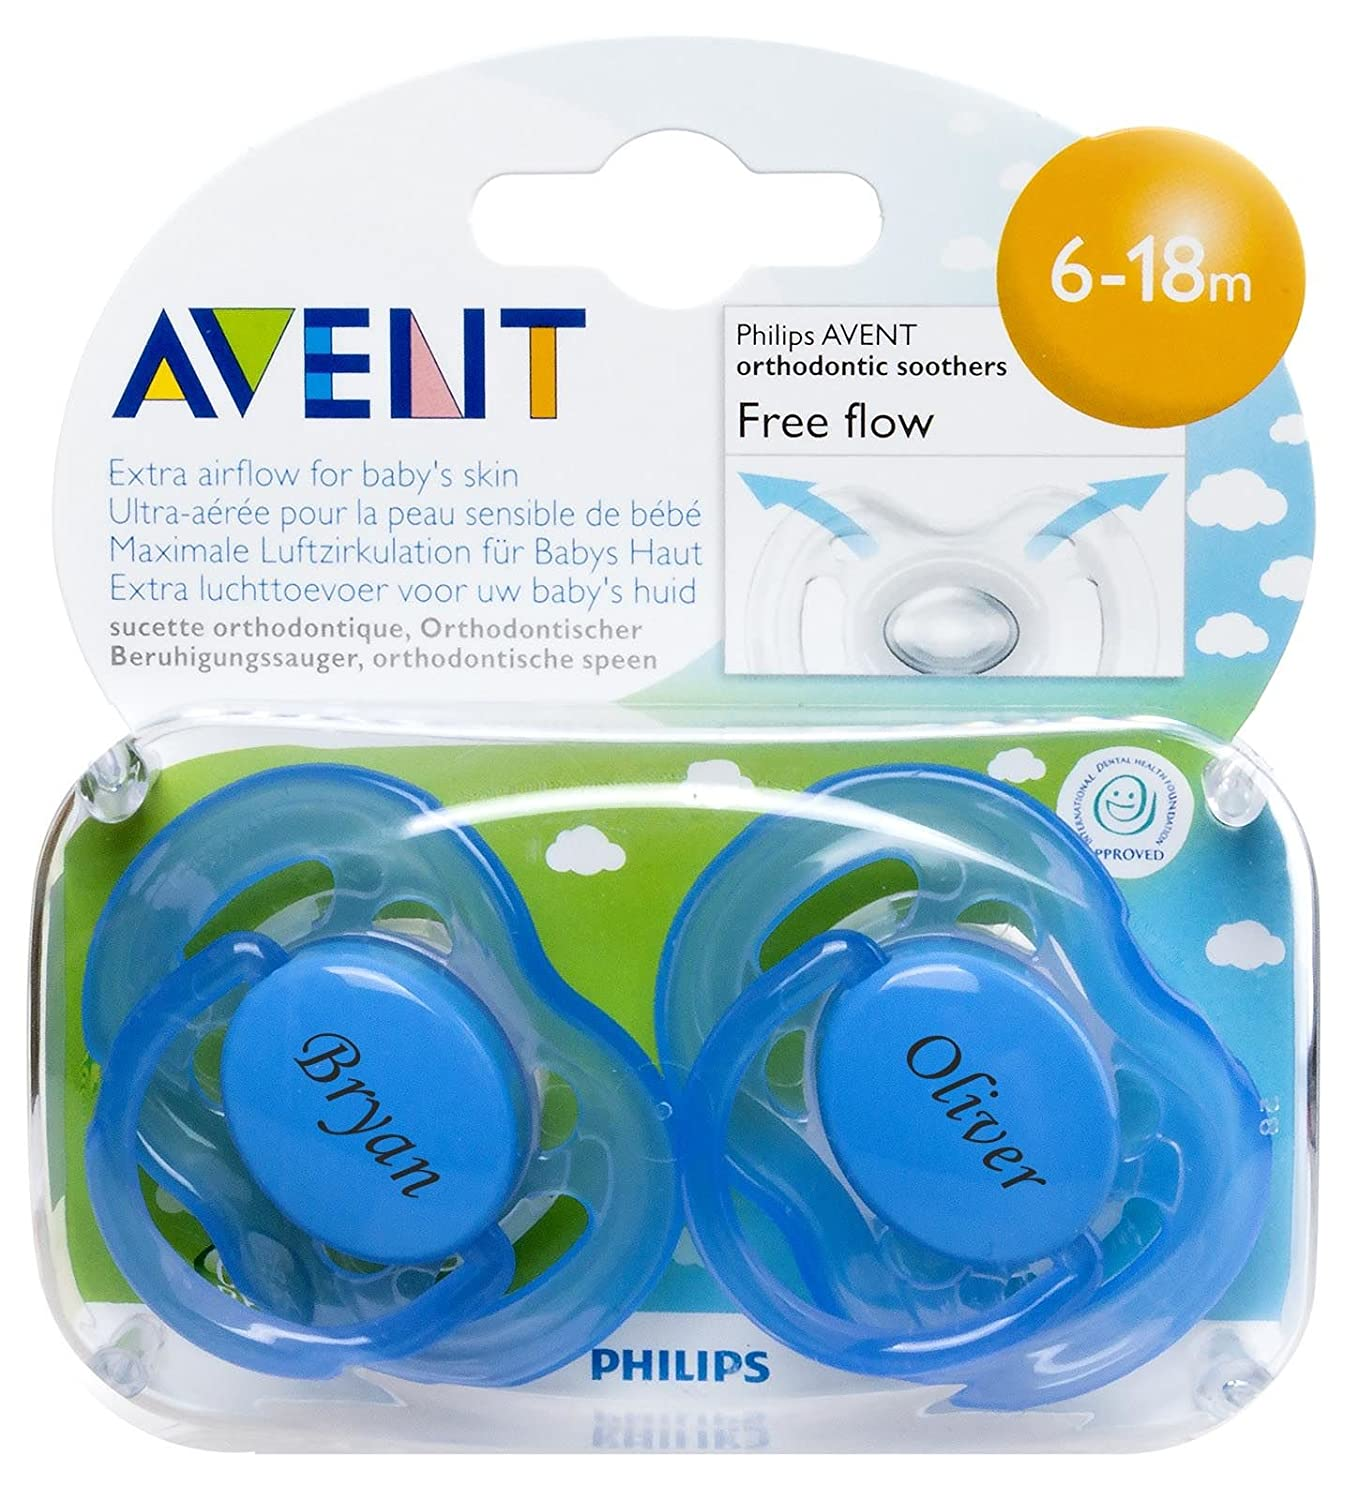 Amazon.com: Regalos personalizados – Philips AVENT última ...